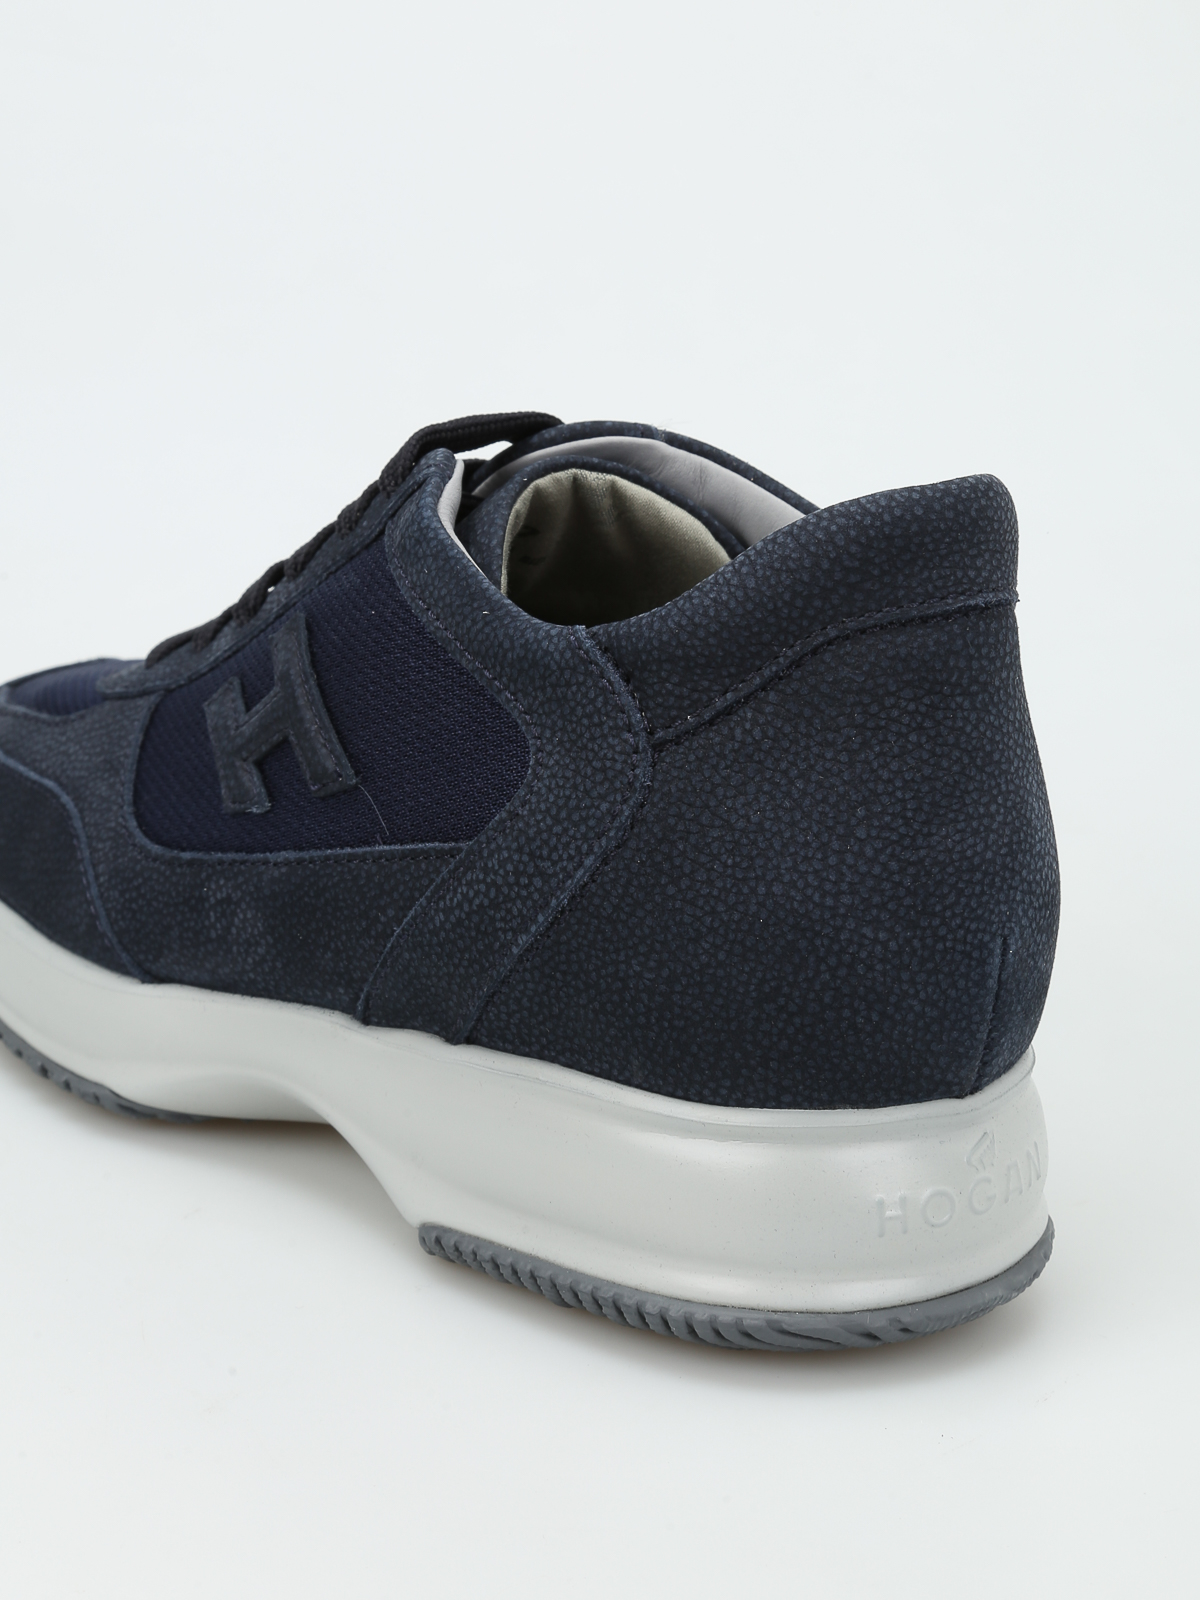 Hogan Shop Online Sneakers New Interactive H 3d Hogan Sneakers Ikrix